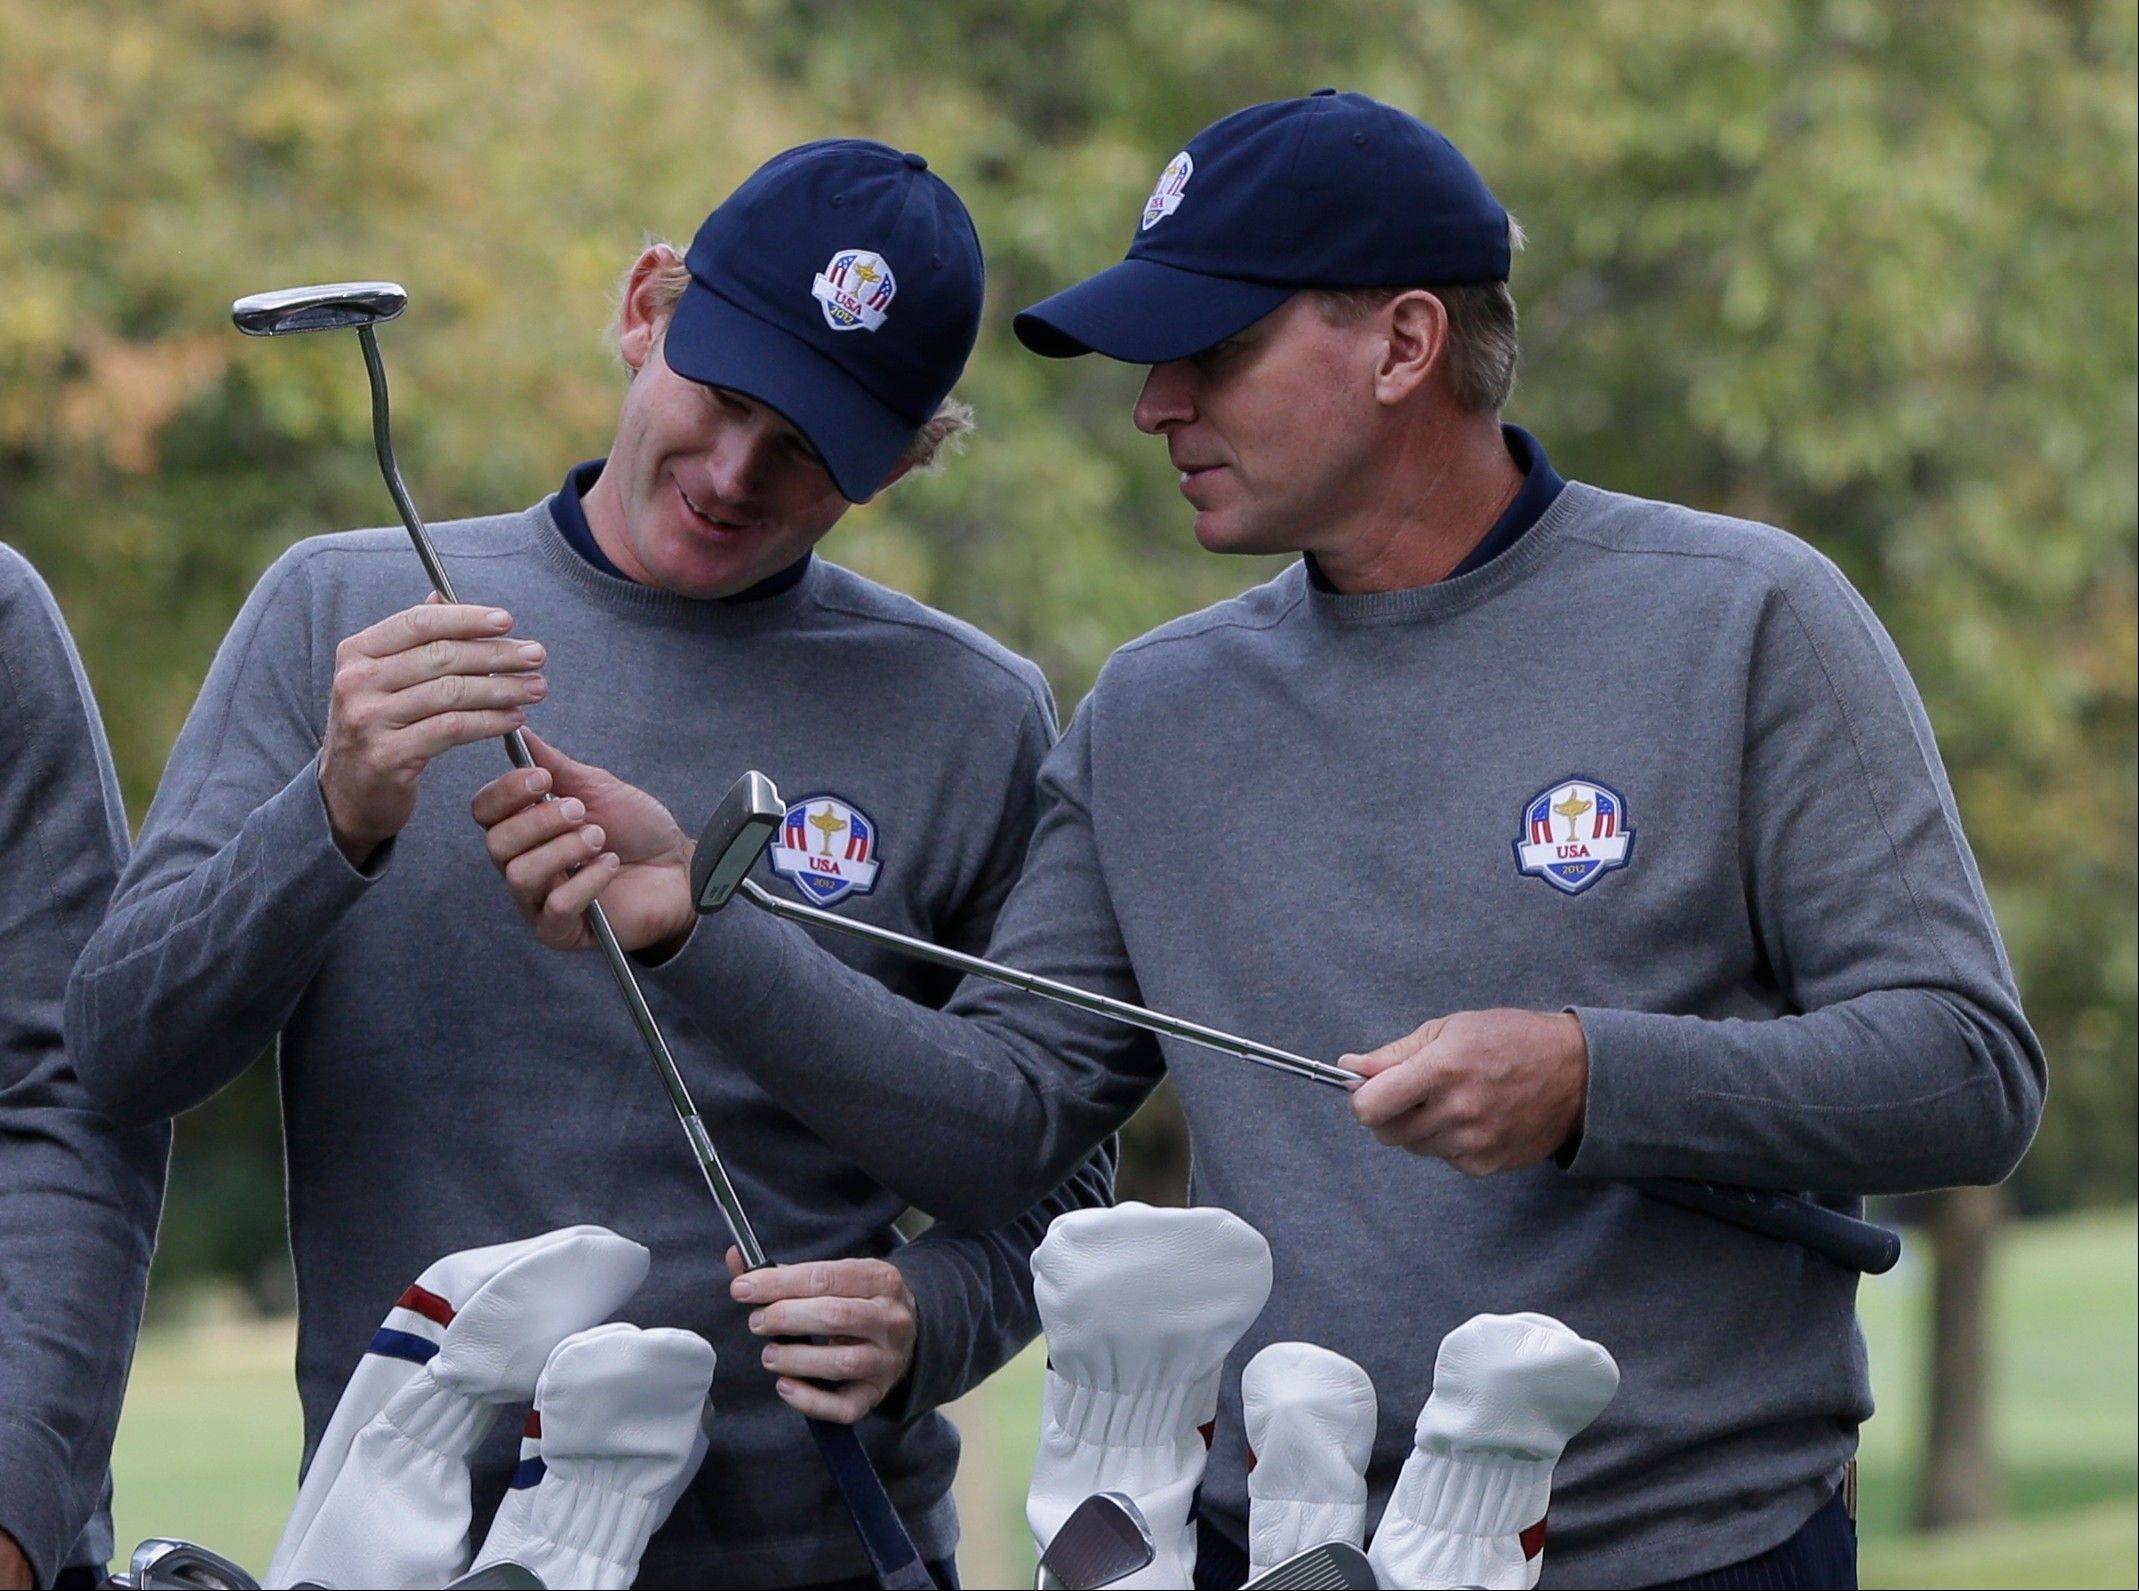 USA's Brandt Snedeker and Steve Stricker look over their putters Tuesday at Medinah Country Club. Snedeker said he's anxious for Friday's start.